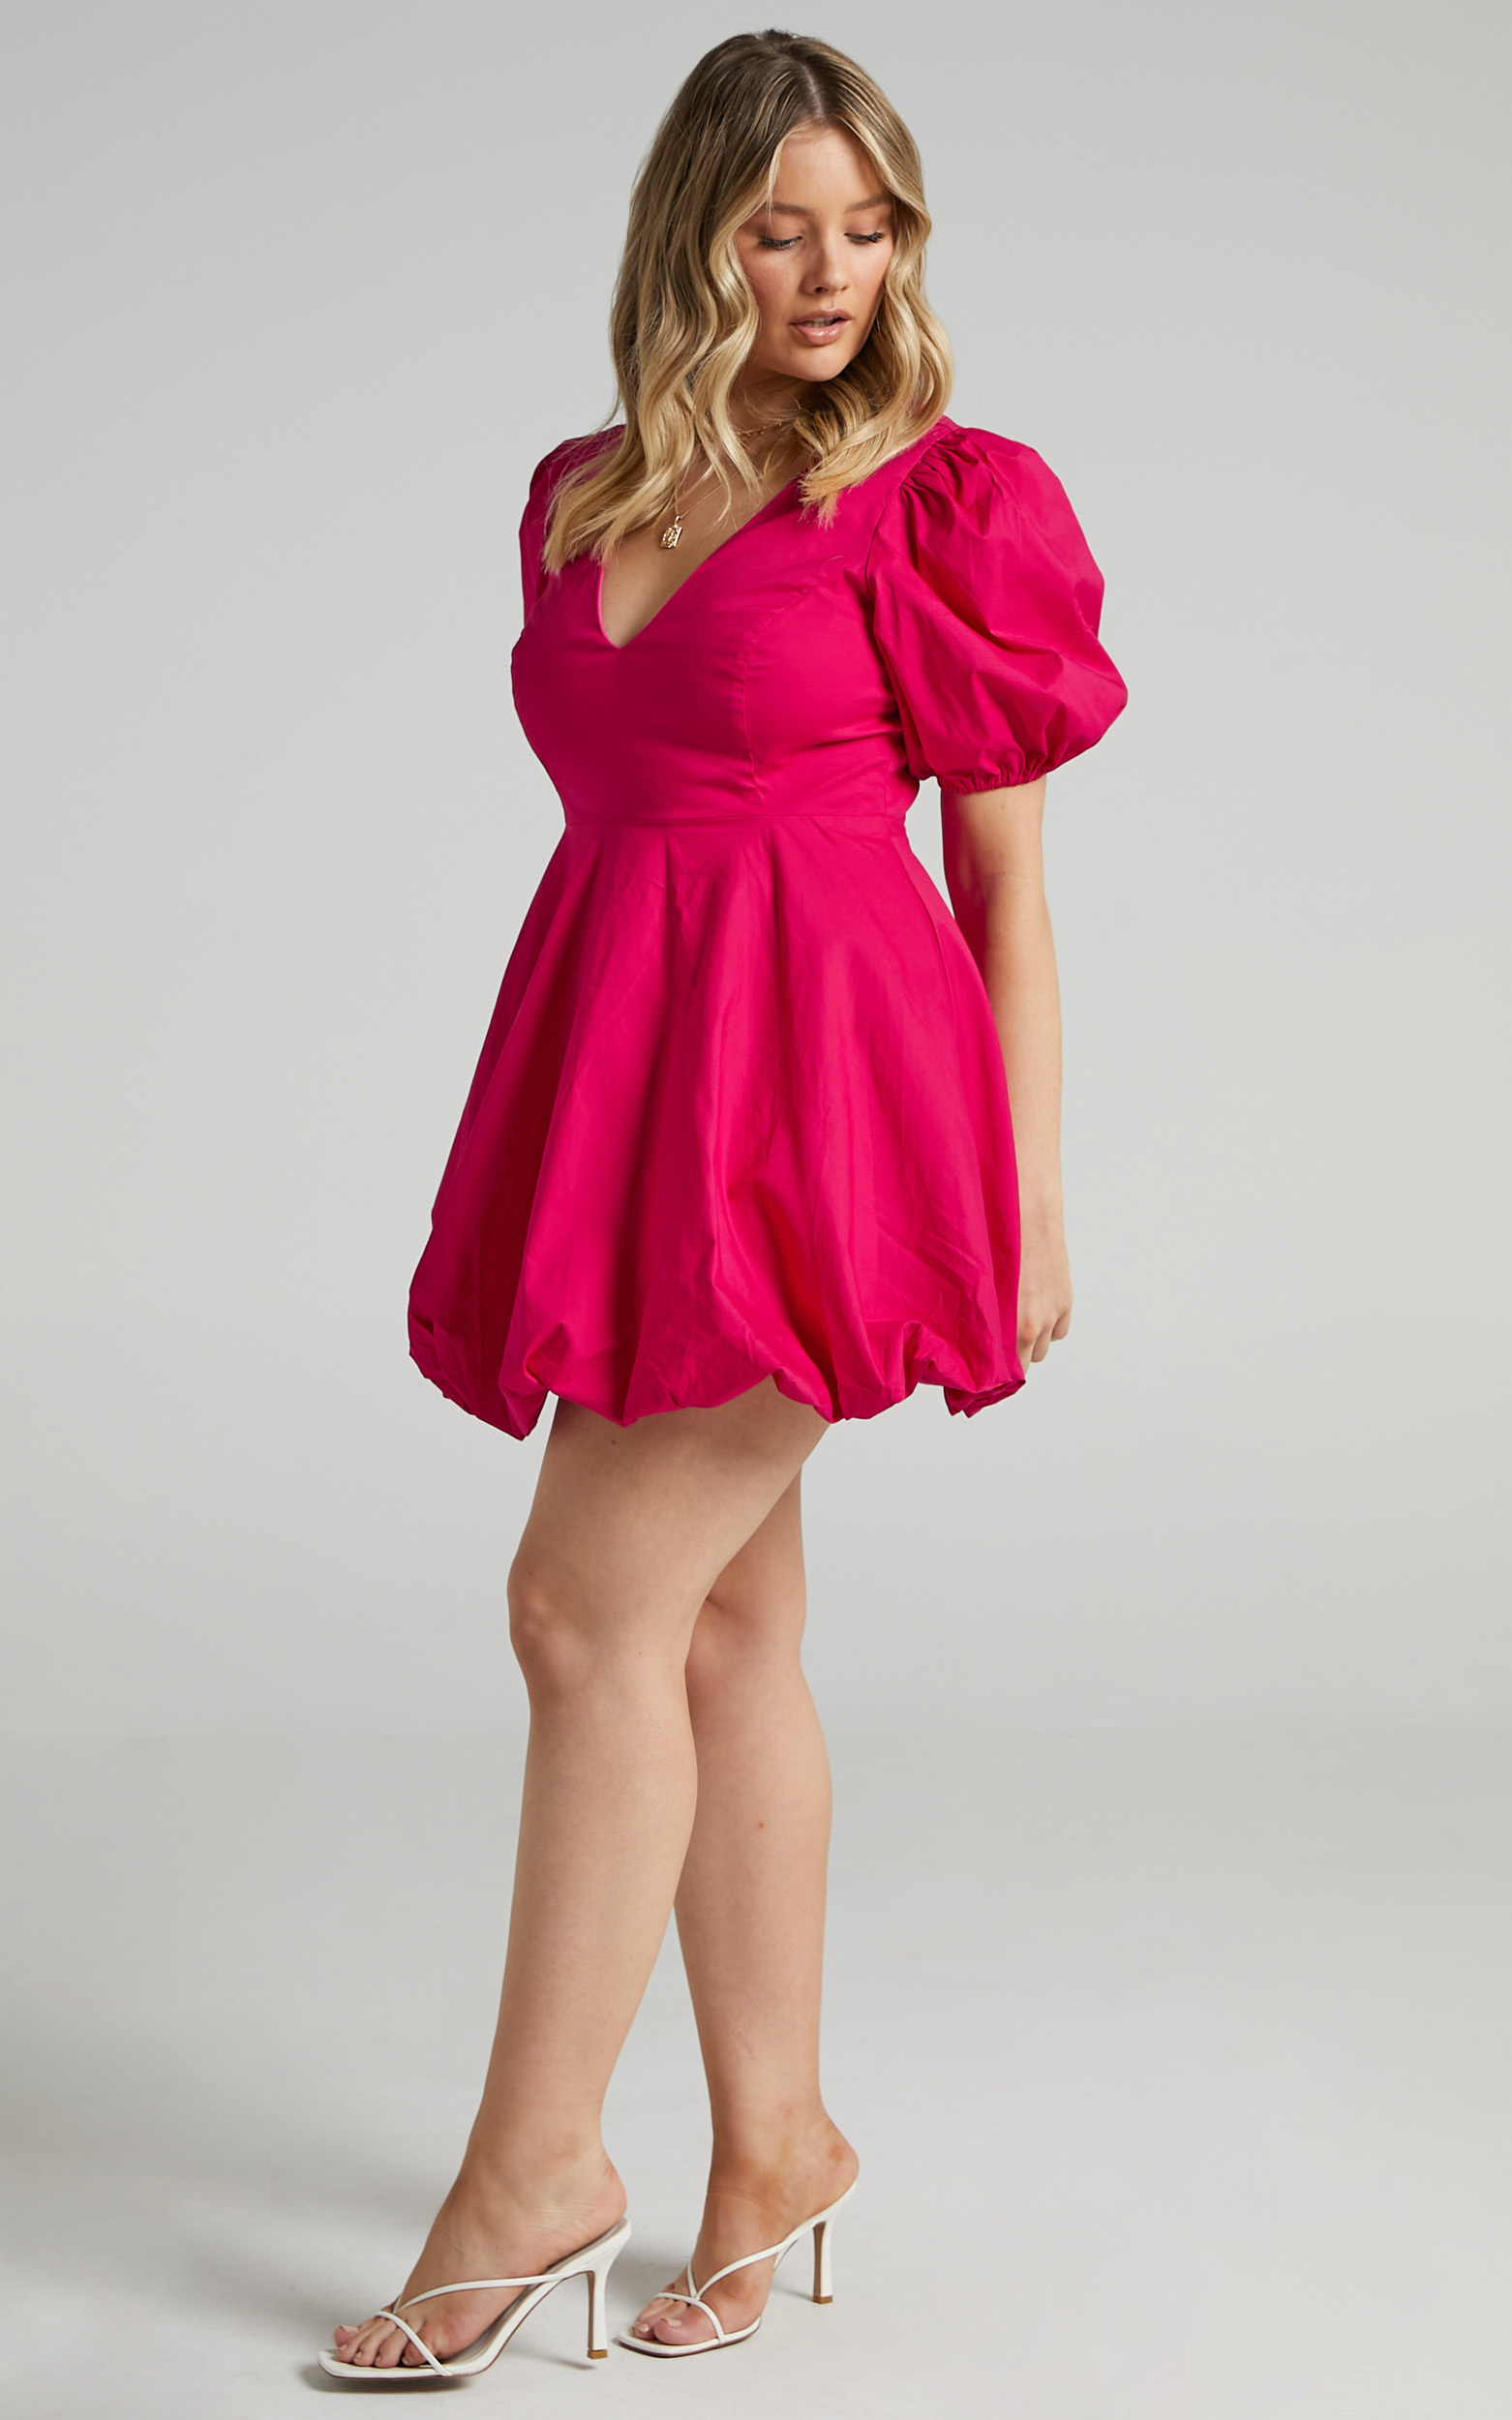 Ebrill Dress in Berry - 06, PNK2, hi-res image number null